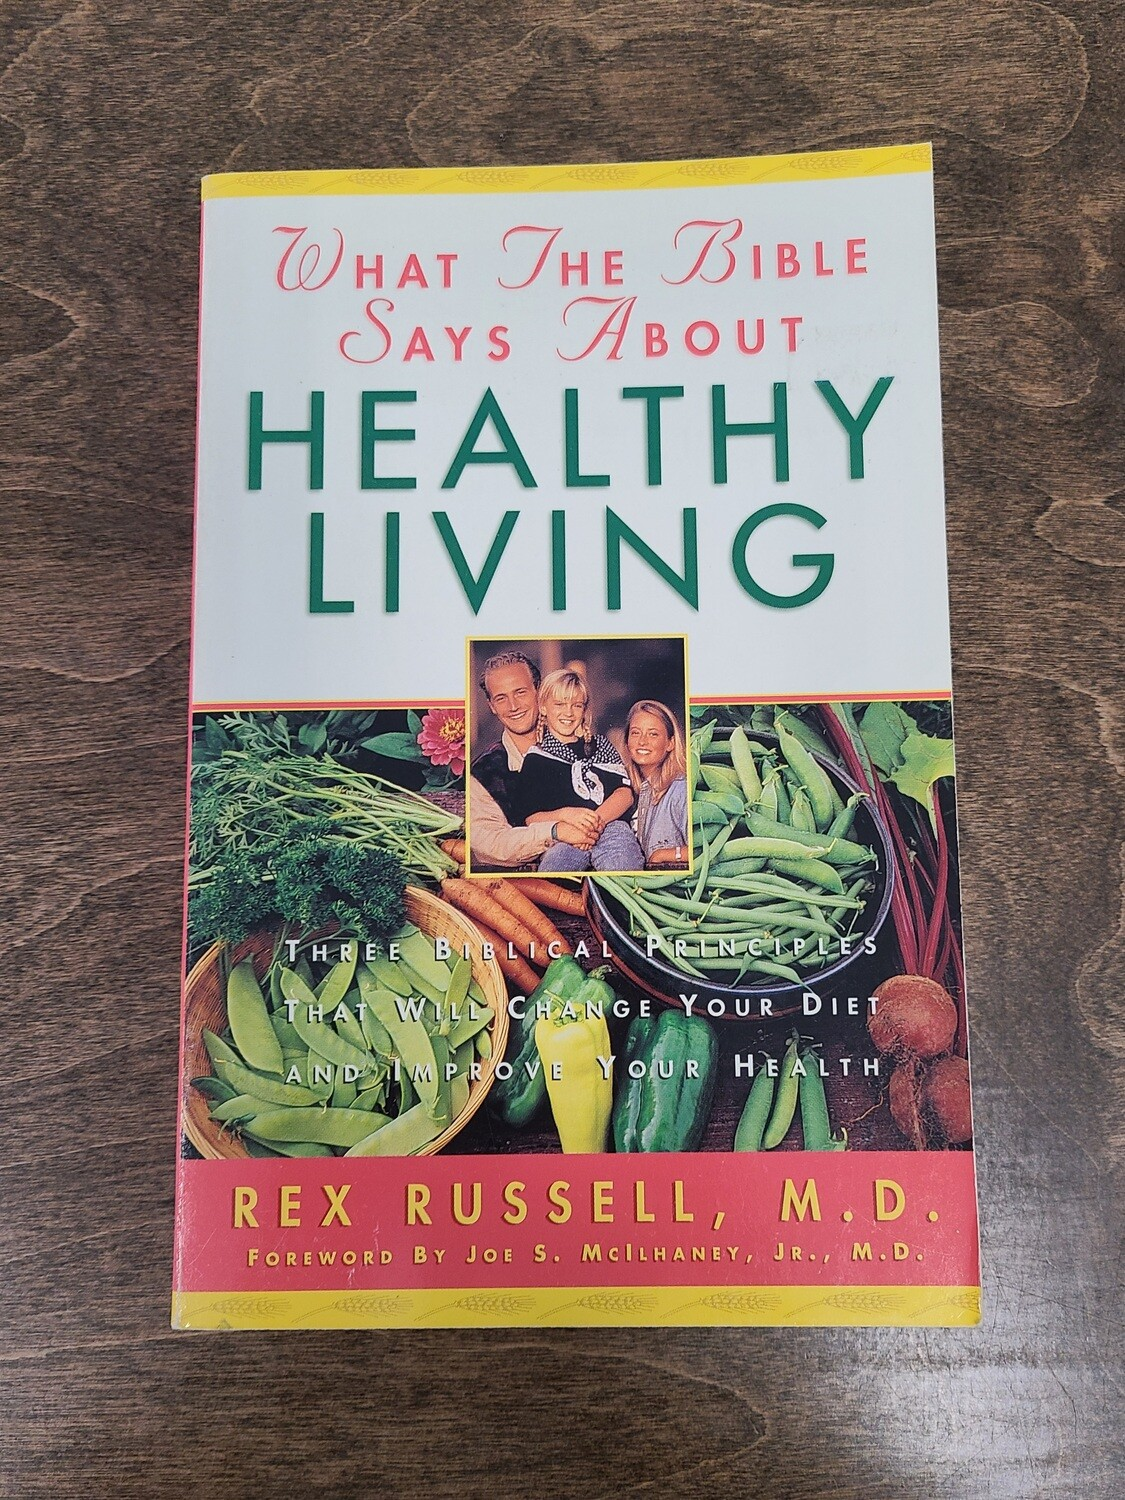 What the Bible Says about Healthy Living by Rex Russell, M. D.